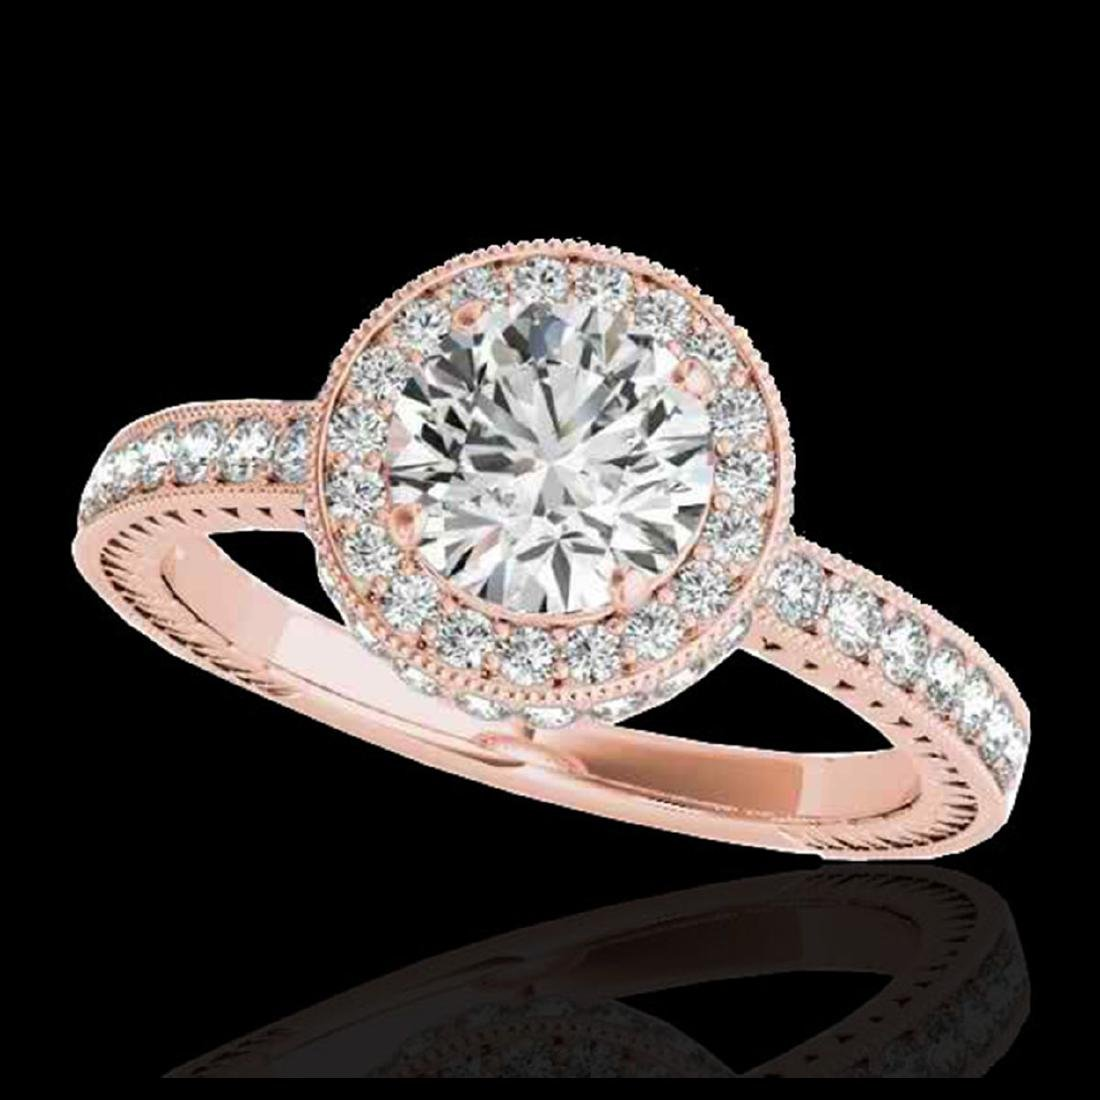 1.51 ctw H-SI/I Diamond Solitaire Halo Ring 10K Rose